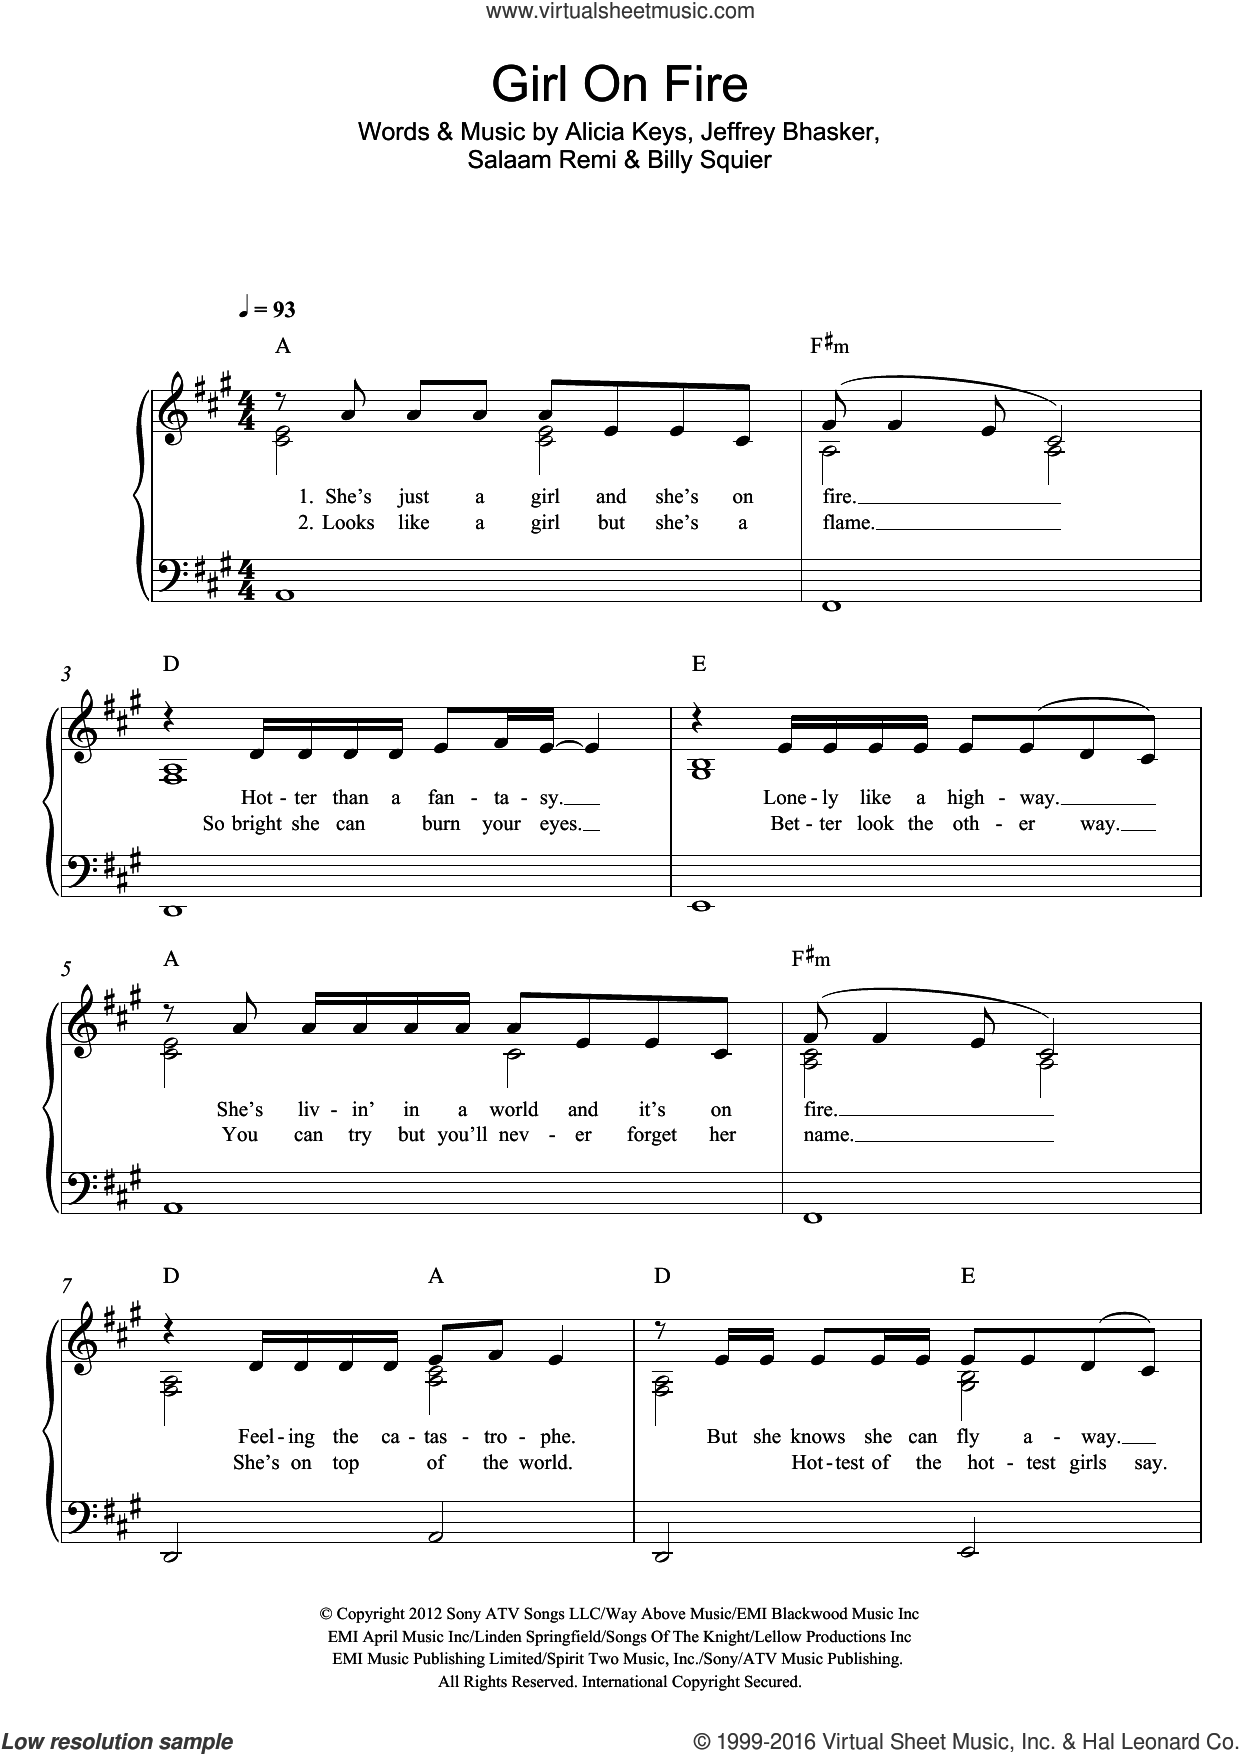 Girl On Fire sheet music for piano solo by Alicia Keys, Billy Squier, Jeffrey Bhasker and Salaam Remi, easy. Score Image Preview.